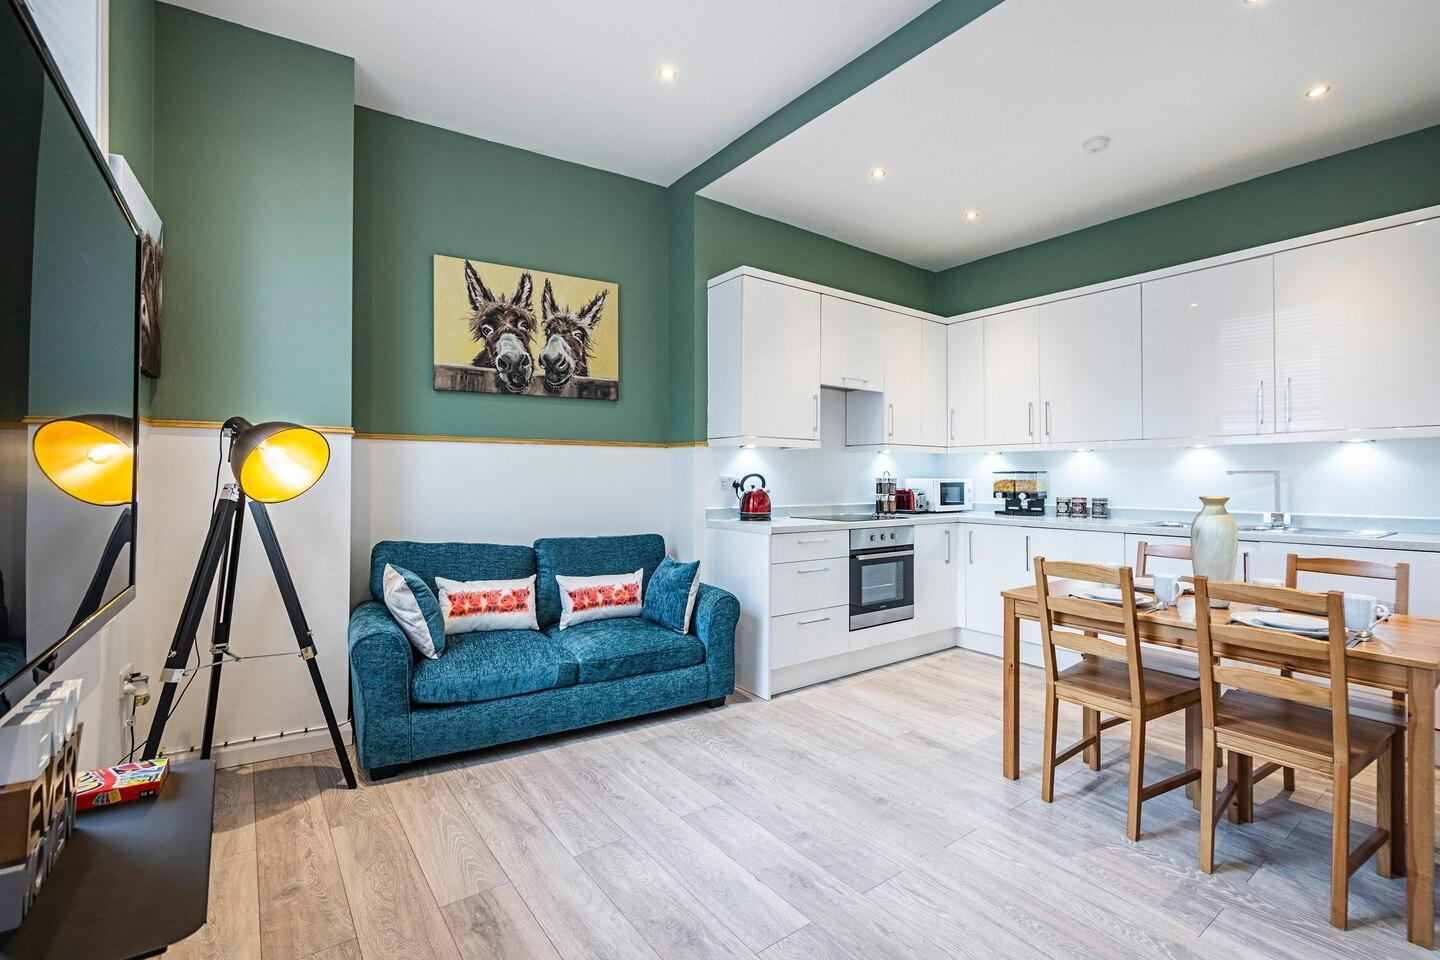 Stunning Flat Perfect for Staycation!